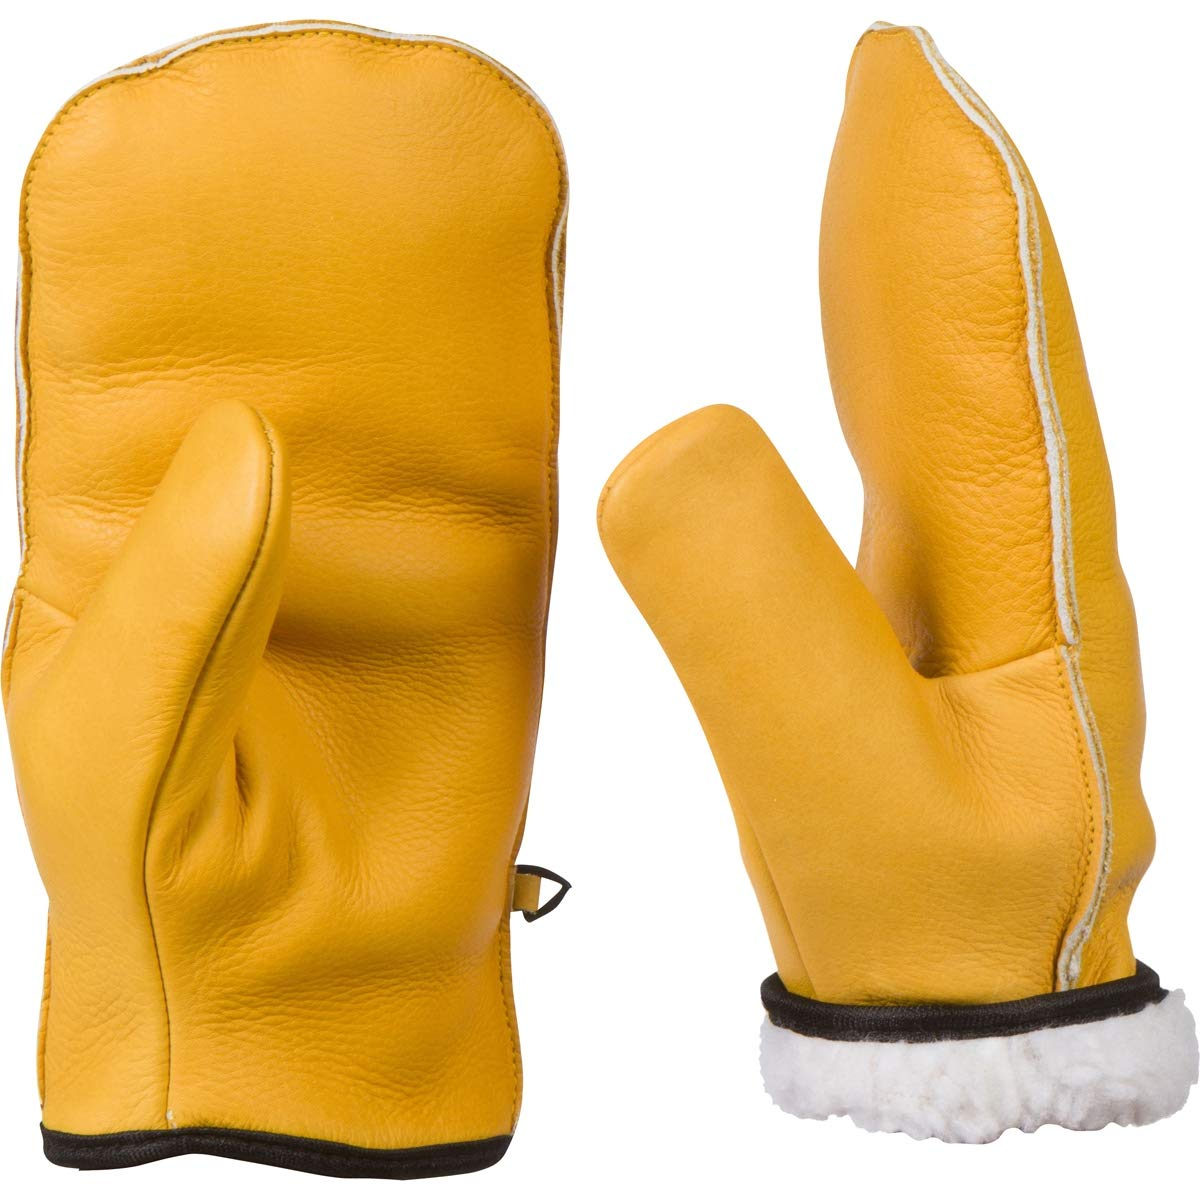 Leather Chopper Mitts, Sherpa Lined Cold Weather Mitten Glove (Medium Womens or Teen 13-15)